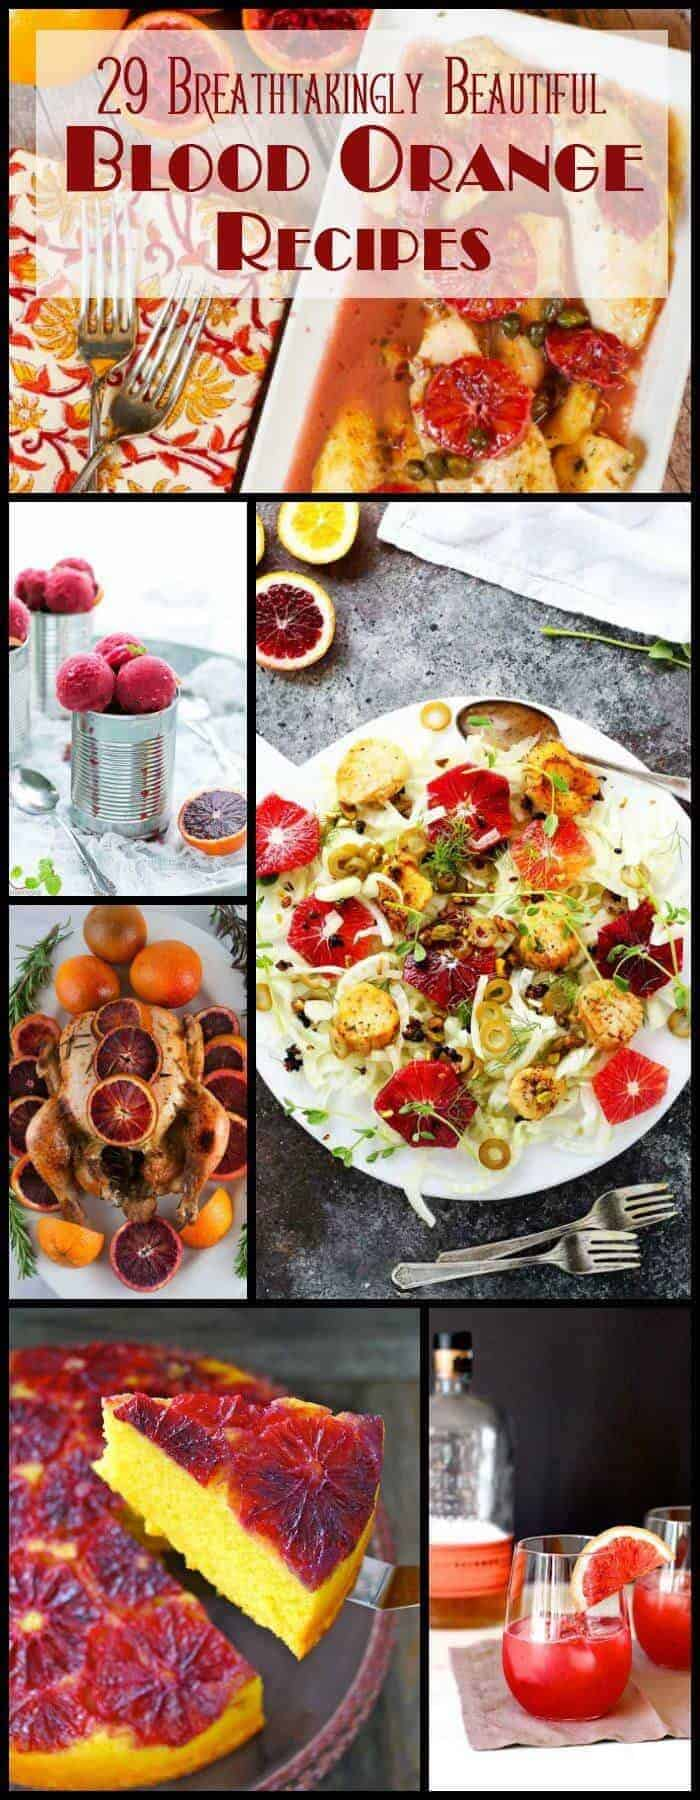 A collection of 29 Breathtakingly Beautiful Blood Orange Recipes that include savory main dishes, main and side salads, sweets, and cocktails. Blood oranges are so versatile, healthy, and delicious too! blood orange recipes / savory blood orange recipes / blood orange salads / blood orange cocktails / blood orange main dishes